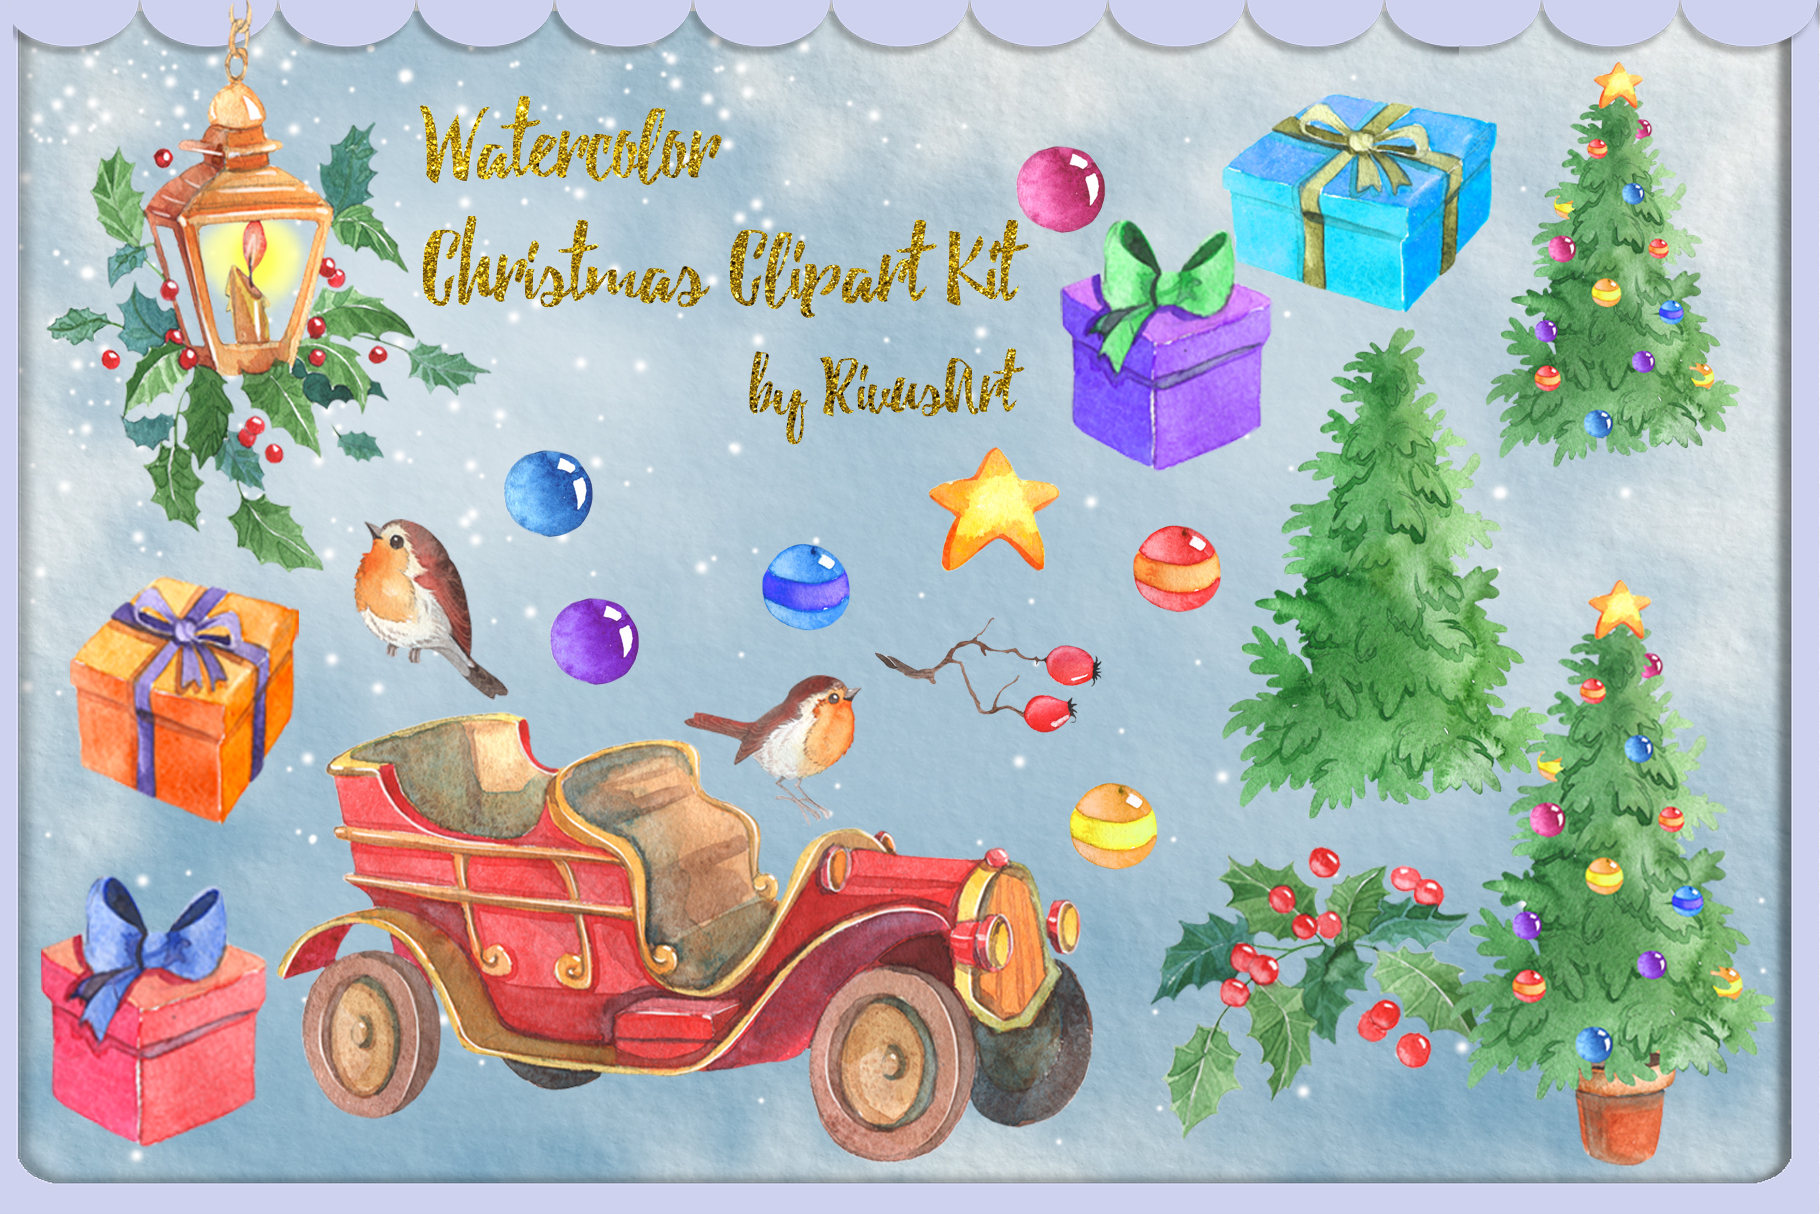 Watercolor Christmas clipart set example image 5